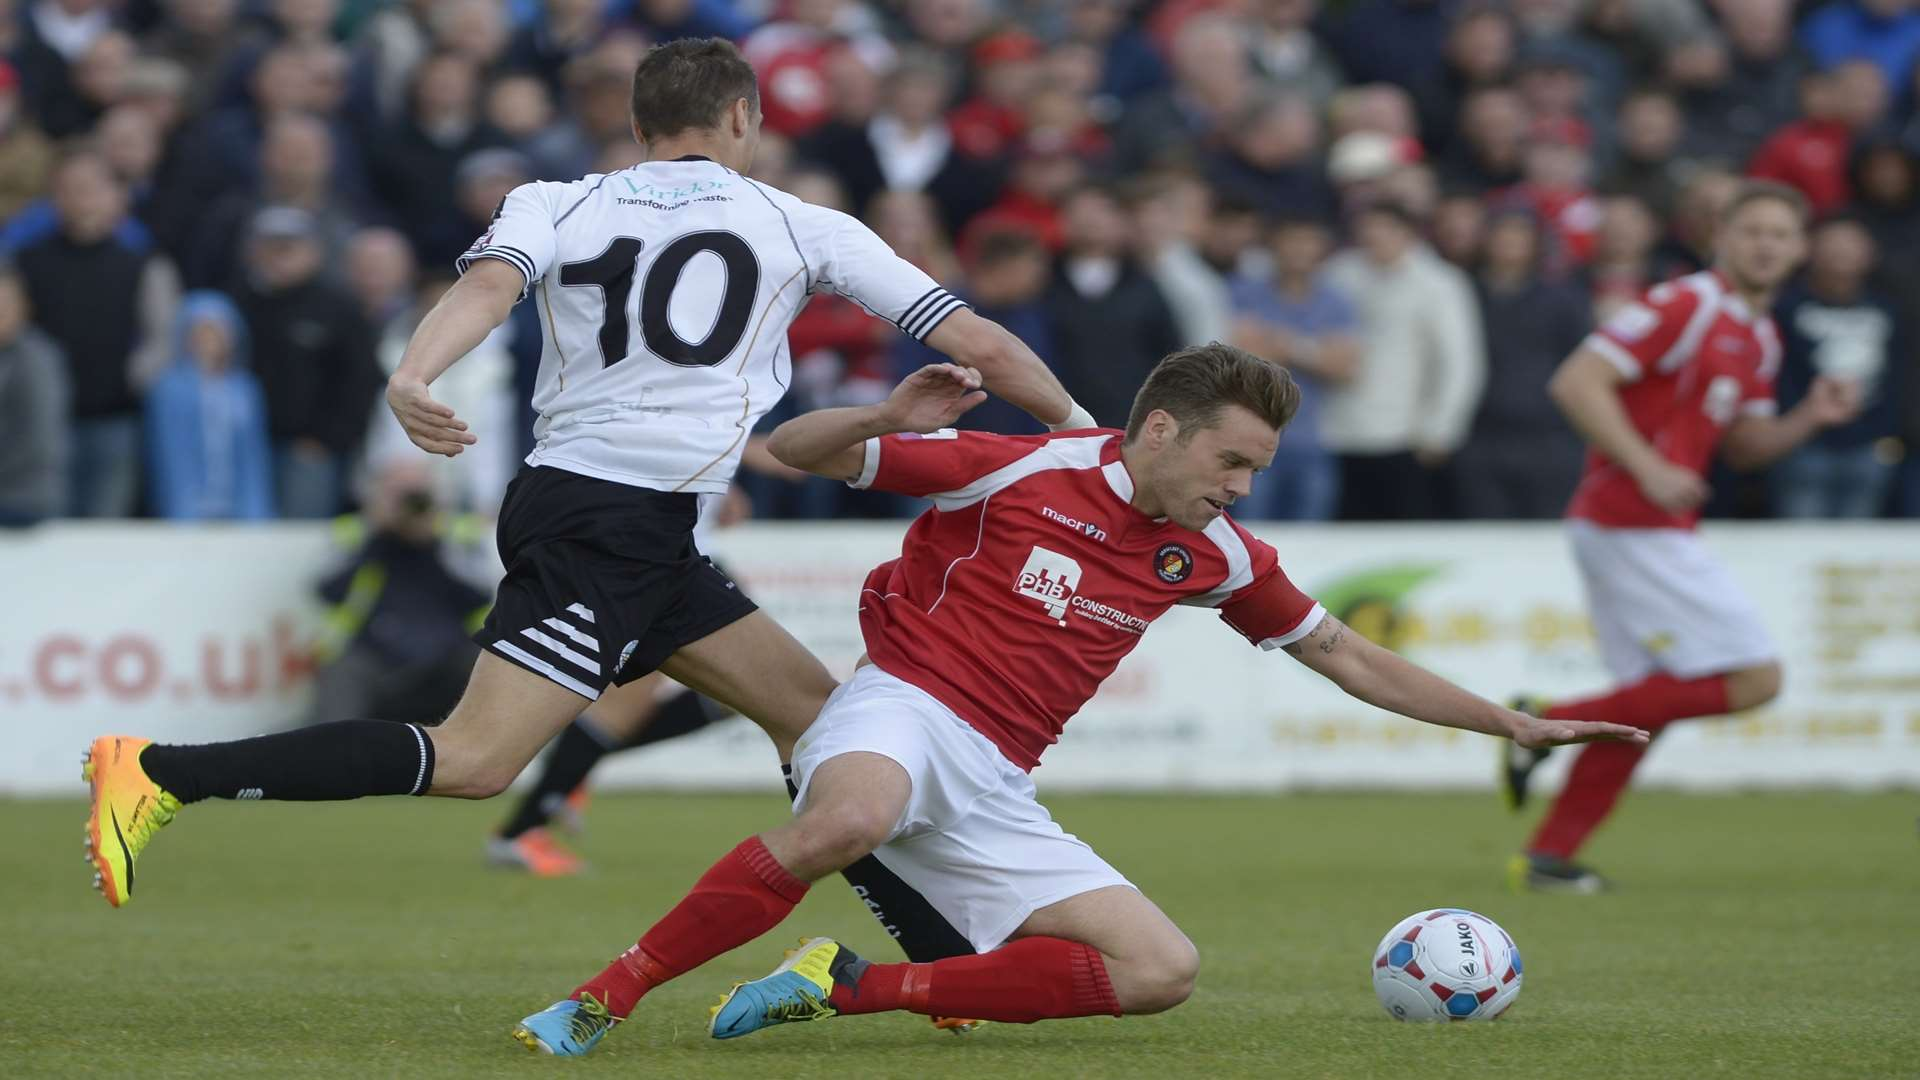 Daryl McMahon playing for Ebbsfleet against Dover in the 2014 Conference South play-off final Picture: Andy Payton